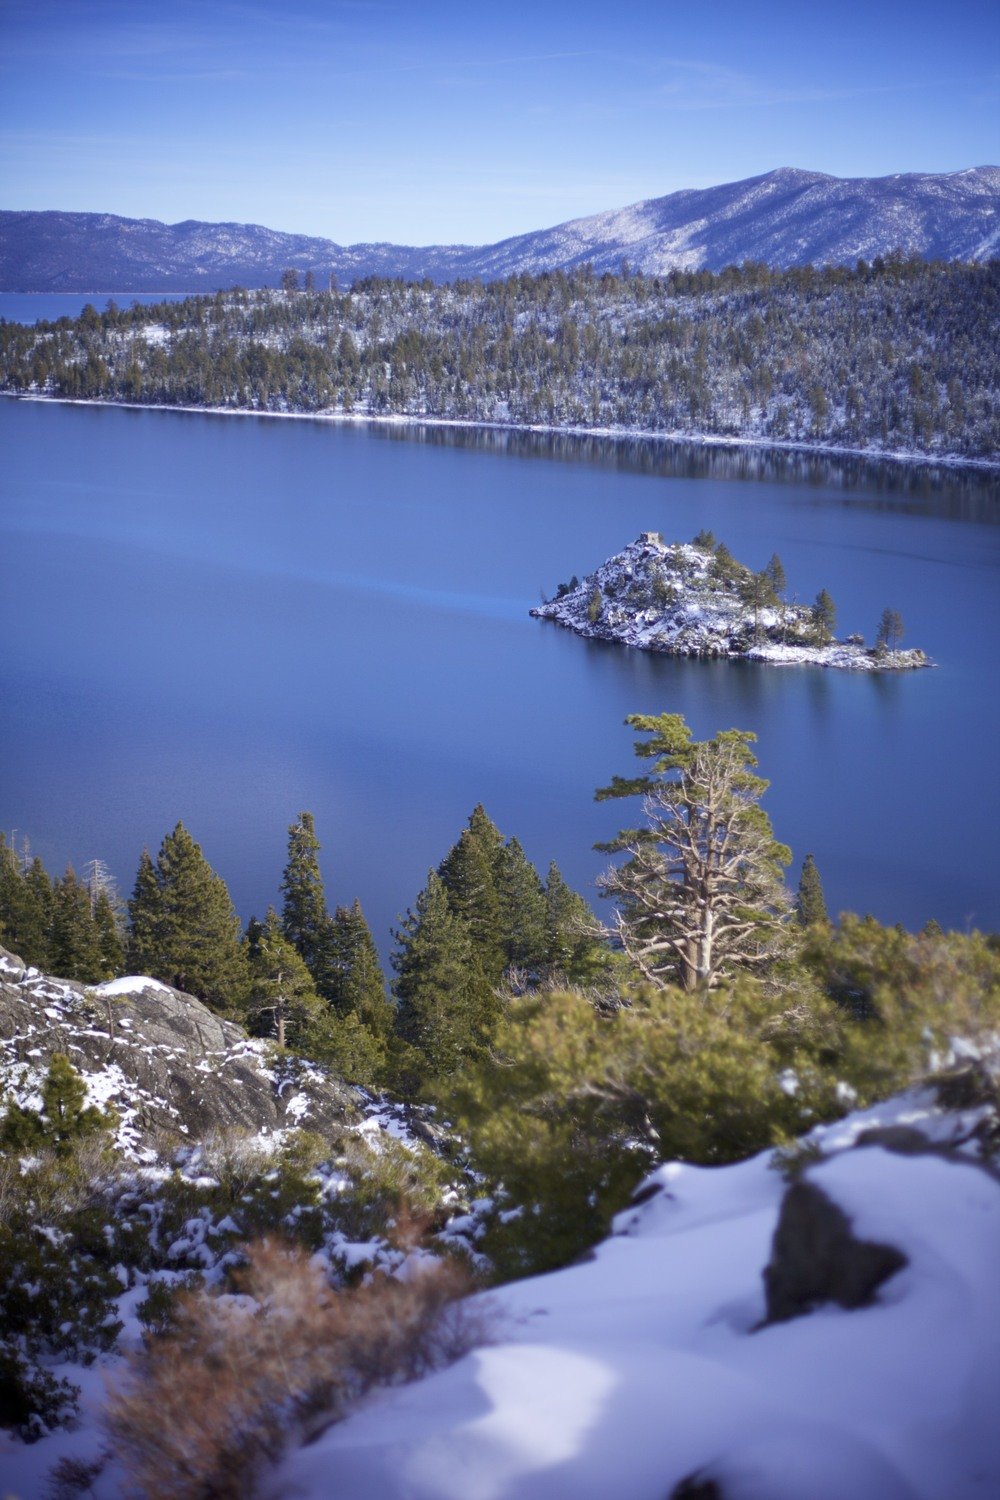 Emerald Bay. Unbelievable.